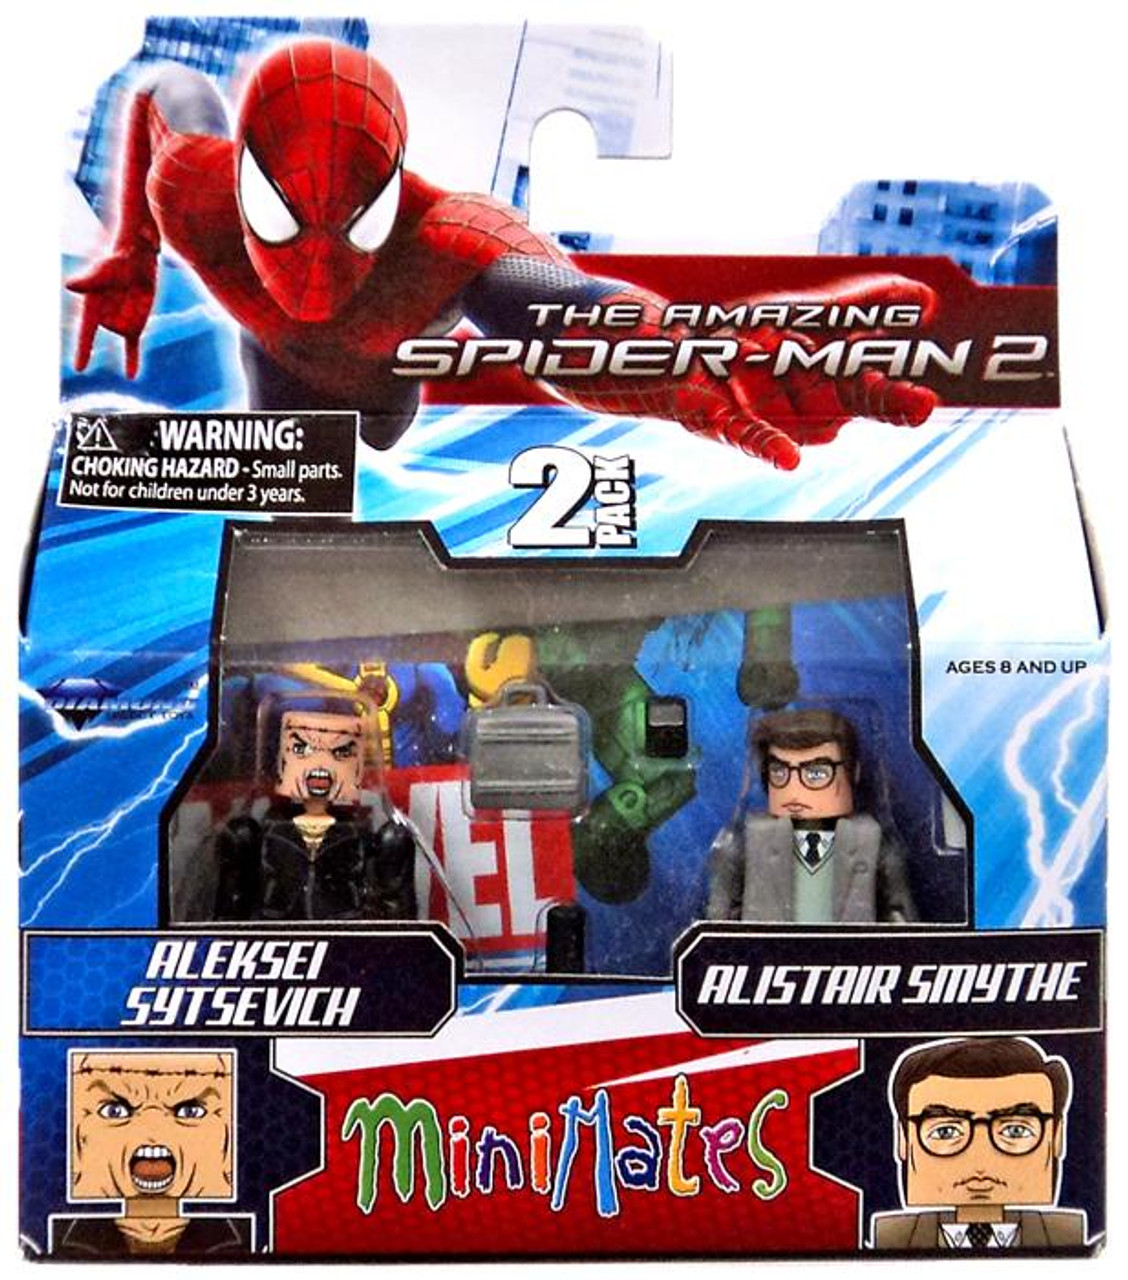 The Amazing Spider-Man 2 Minimates Series 56 Aleksei Sytsevich & Alistair Smythe Minifigure 2-Pack